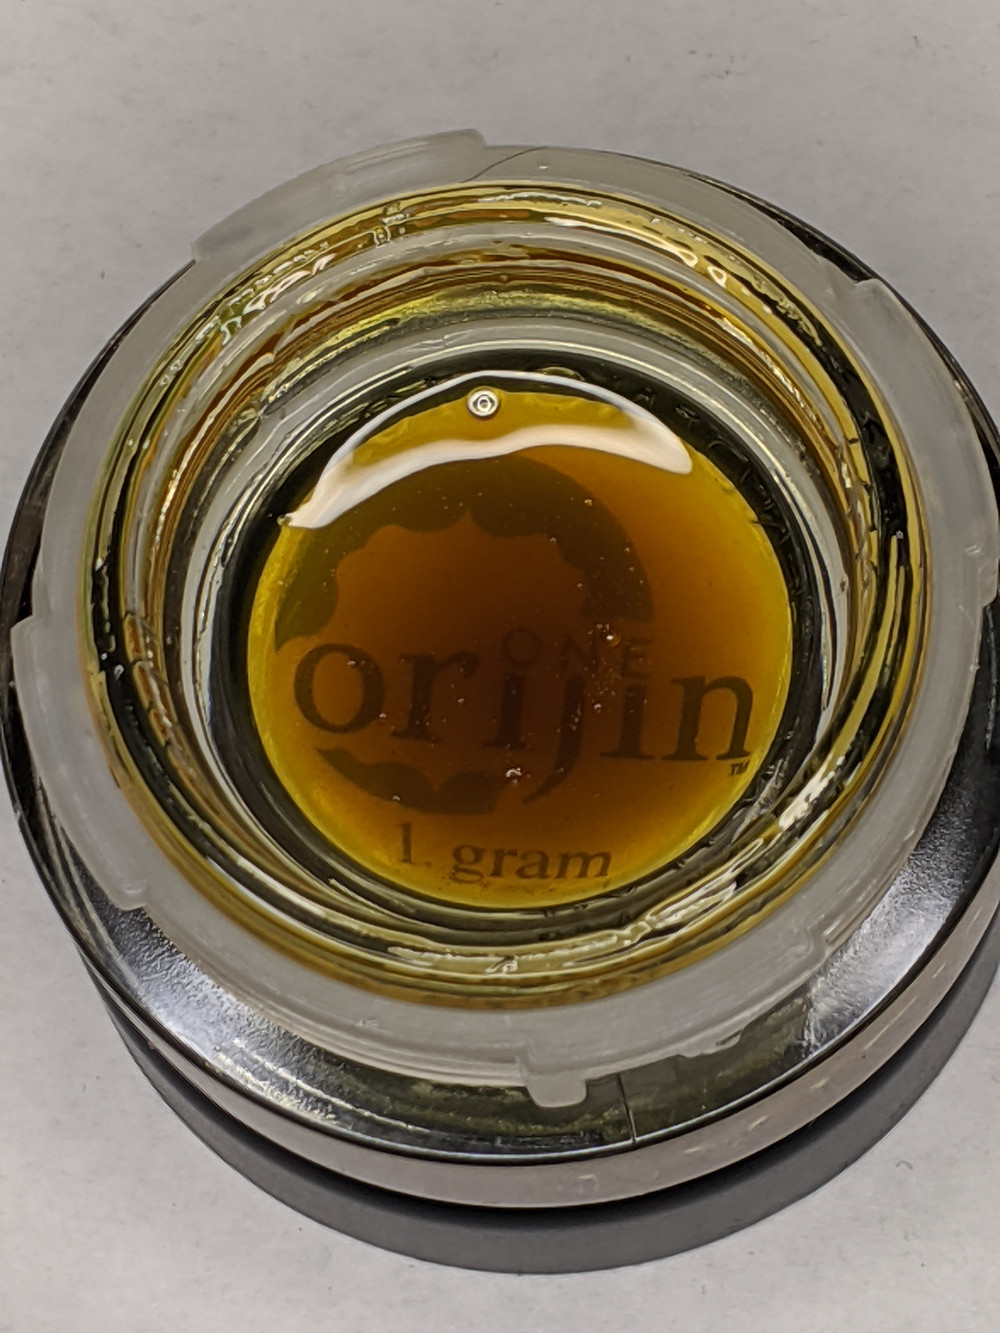 One Orijin 1:1 Flower Rosin